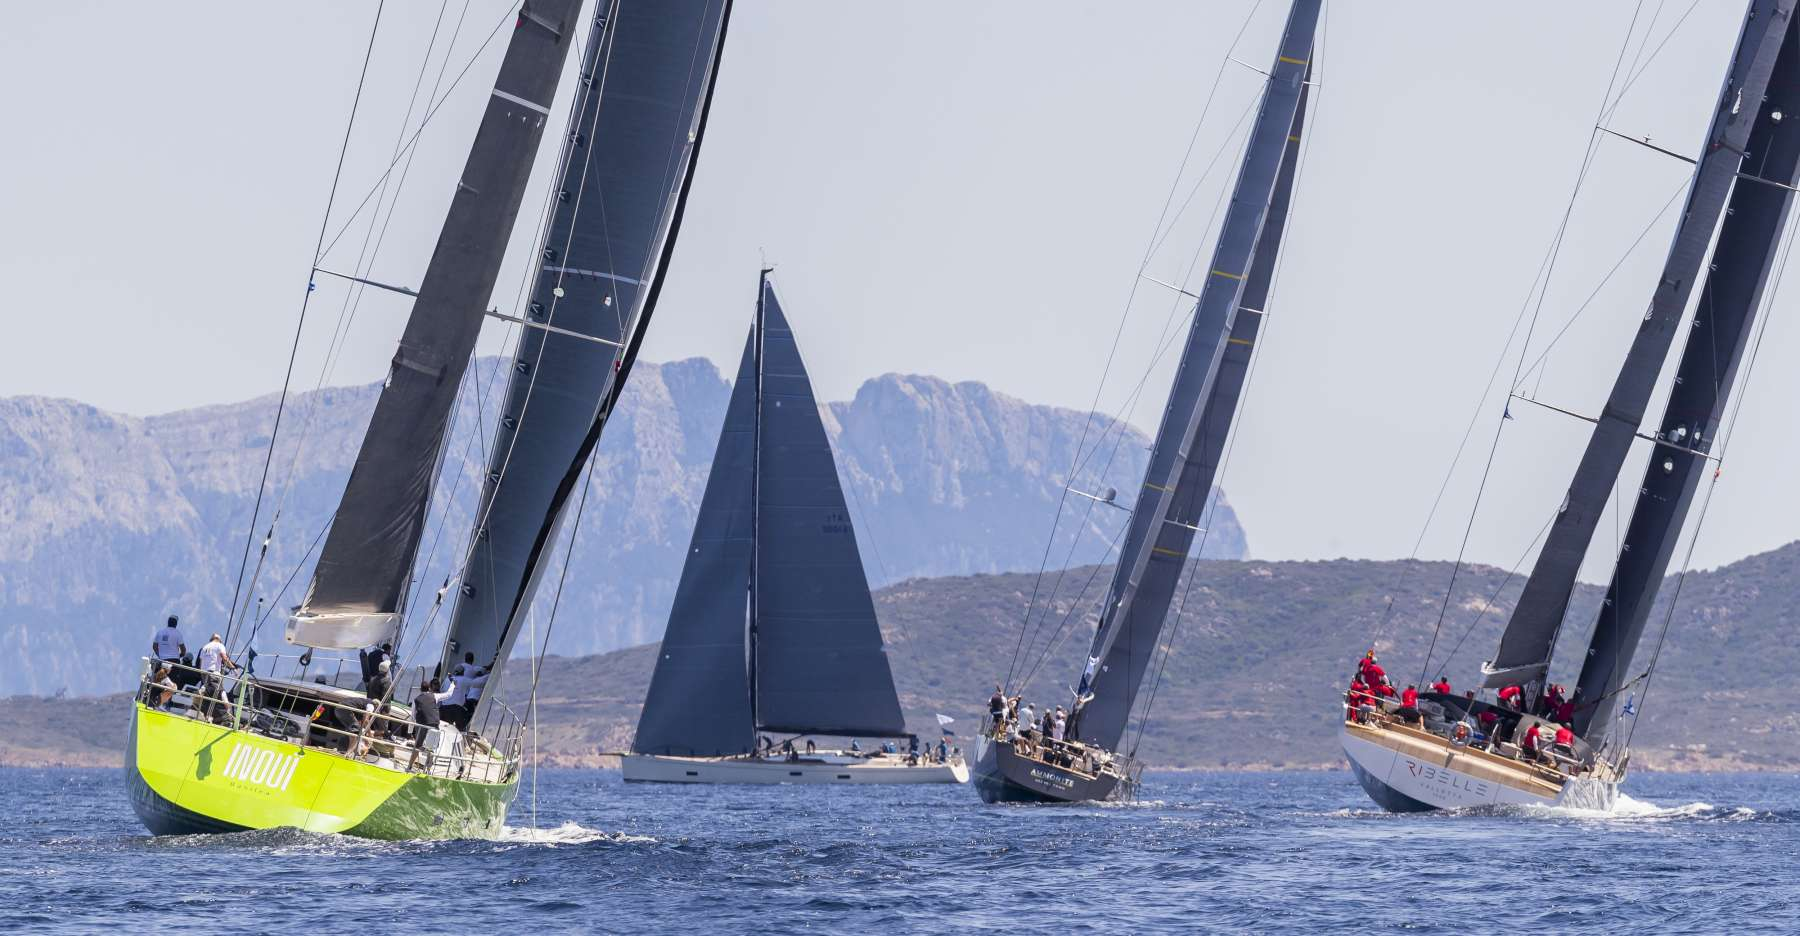 Loro Piana Superyacht Regatta, Magic Carpet 3 and Silencio leaders on day 1 - NEWS - Yacht Club Costa Smeralda